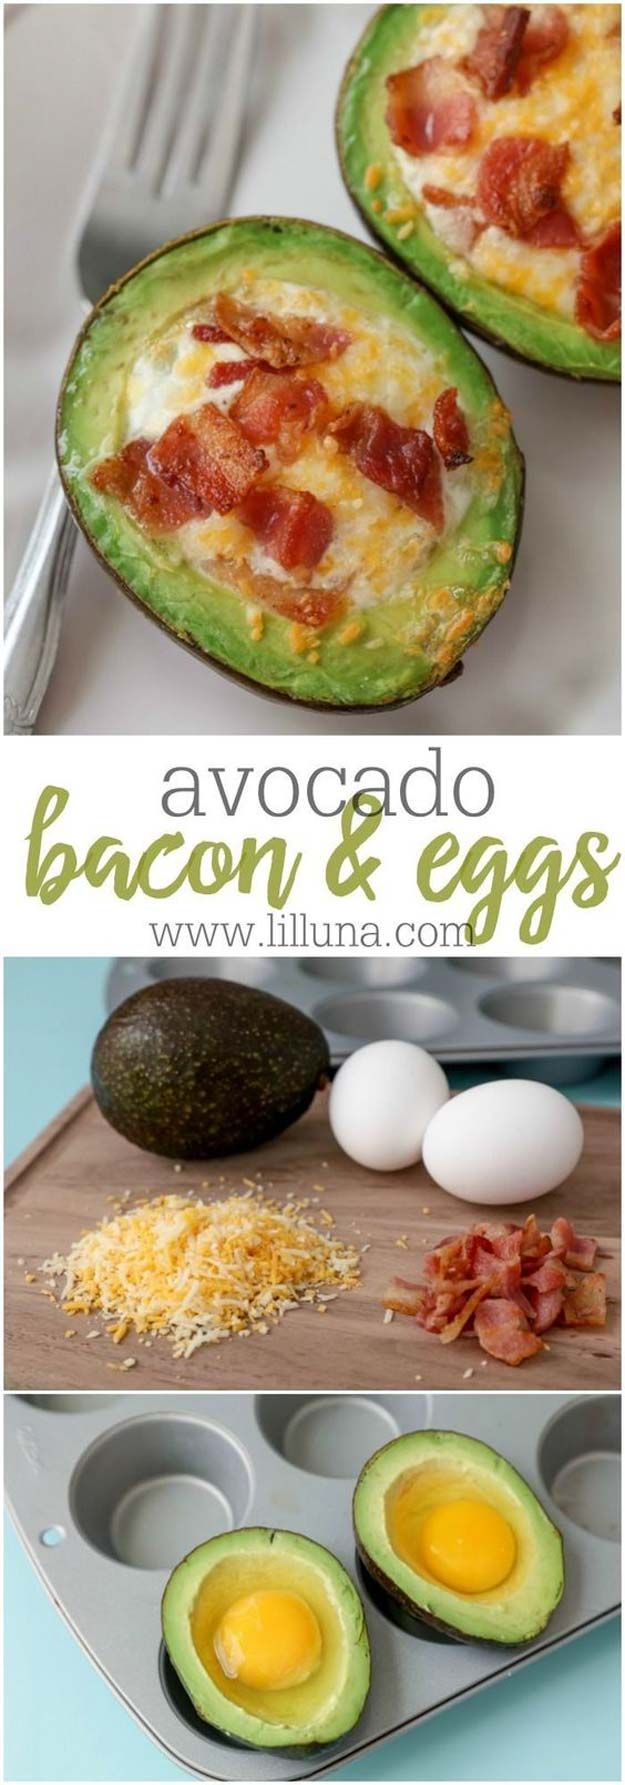 Healthy Avocado Recipes - Avocado Bacon and Eggs - Easy Clean Eating Recipes for Breakfast, Lunches, Dinner and even Desserts - Low Carb Vegetarian Snacks, Dip, Smothie Ideas and All Sorts of Diets - Get Your Fitness in Order with these awesome Paleo Detox Plans - thegoddess.com/healthy-avocado-recipes